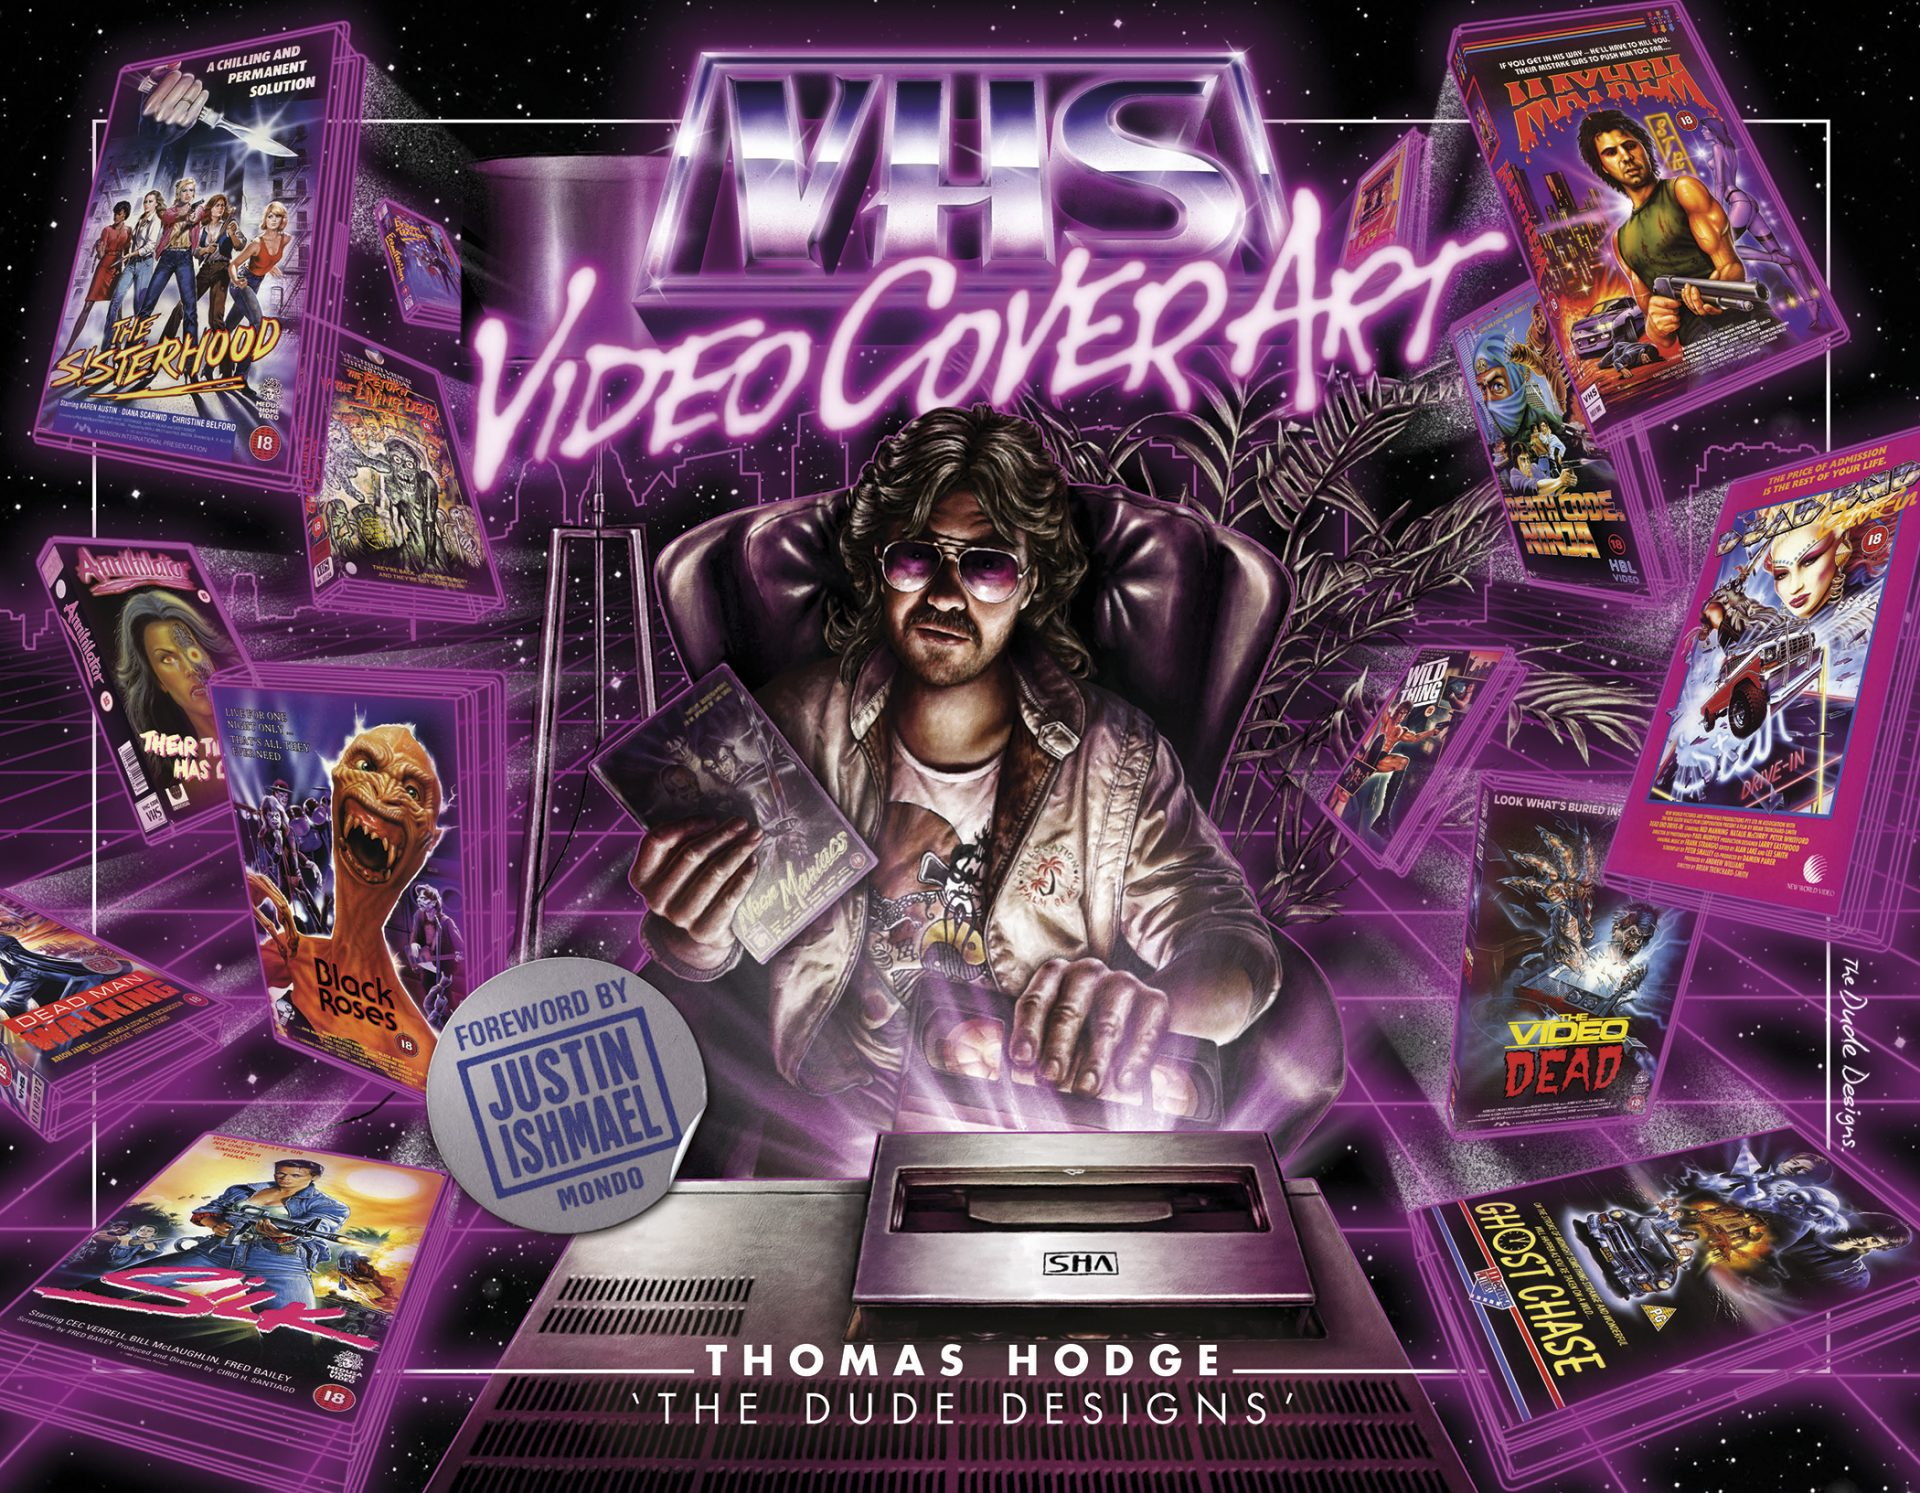 VHS Cover Art: 1980s to Early 1990s (Book review)